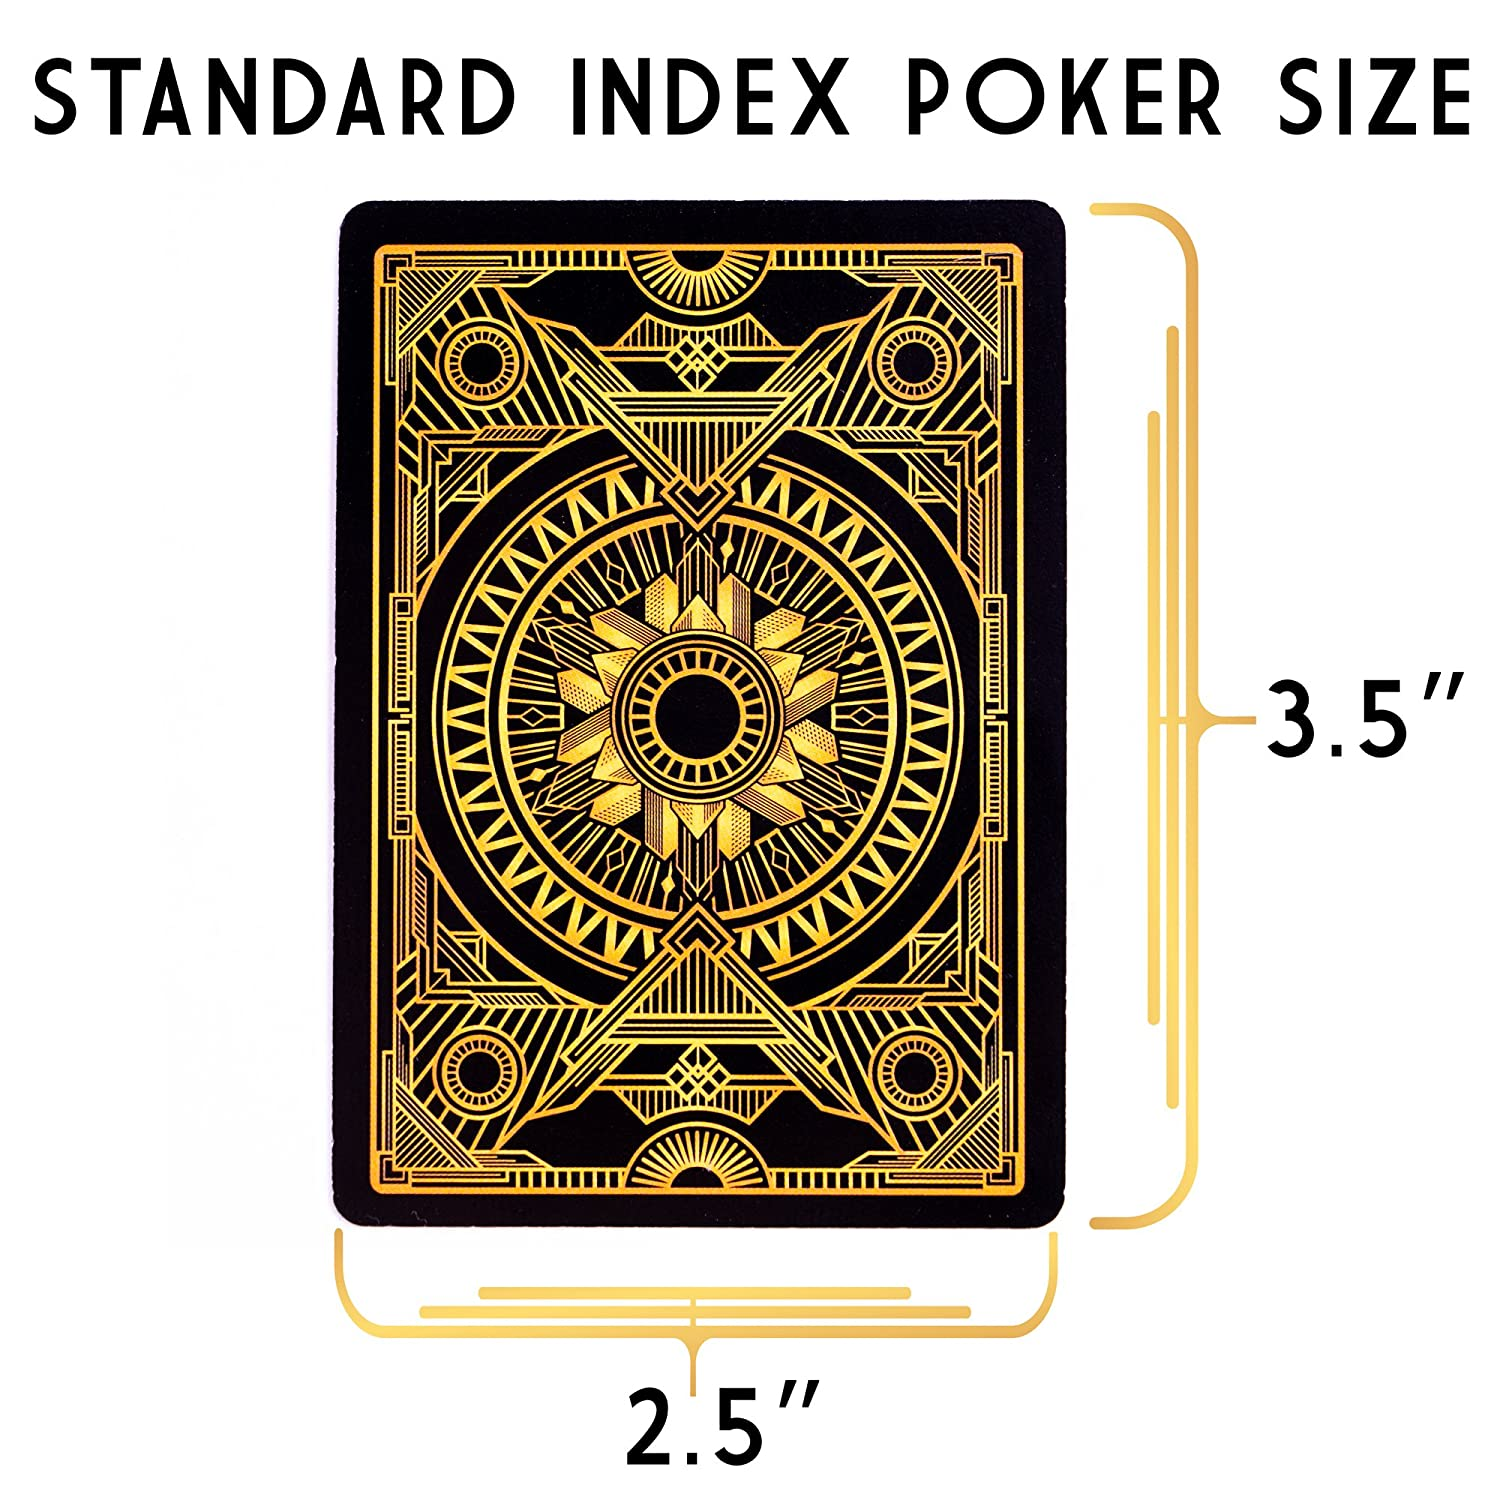 Black Playing Cards /& Gold Accents Brybelly 6 Decks Blind Tiger Prohibition /& Speakeasy Themed Playing Cards Standard Index Plastic-Coated 310gsm Black Core Custom Card Deck Poker Size Brybelly Holdings Inc.